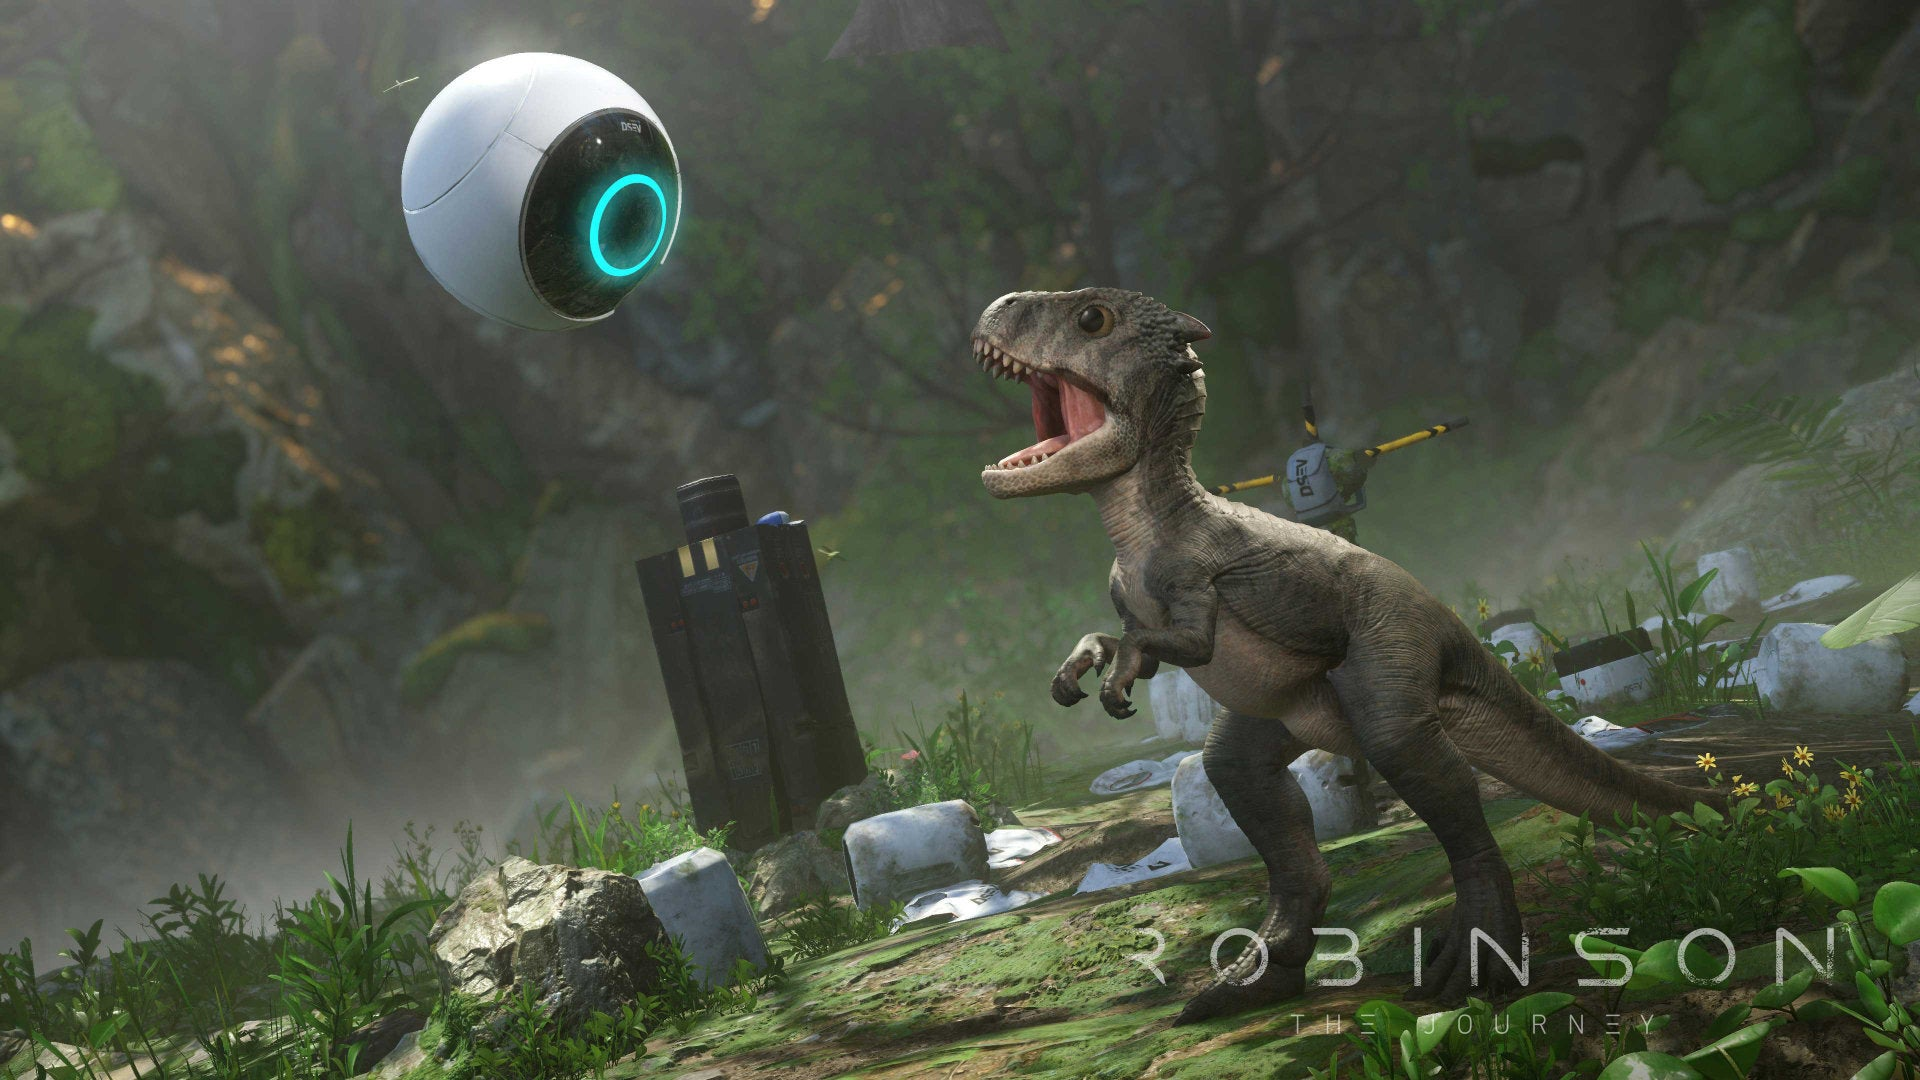 Best VR Games 2019: All the best games for your headset